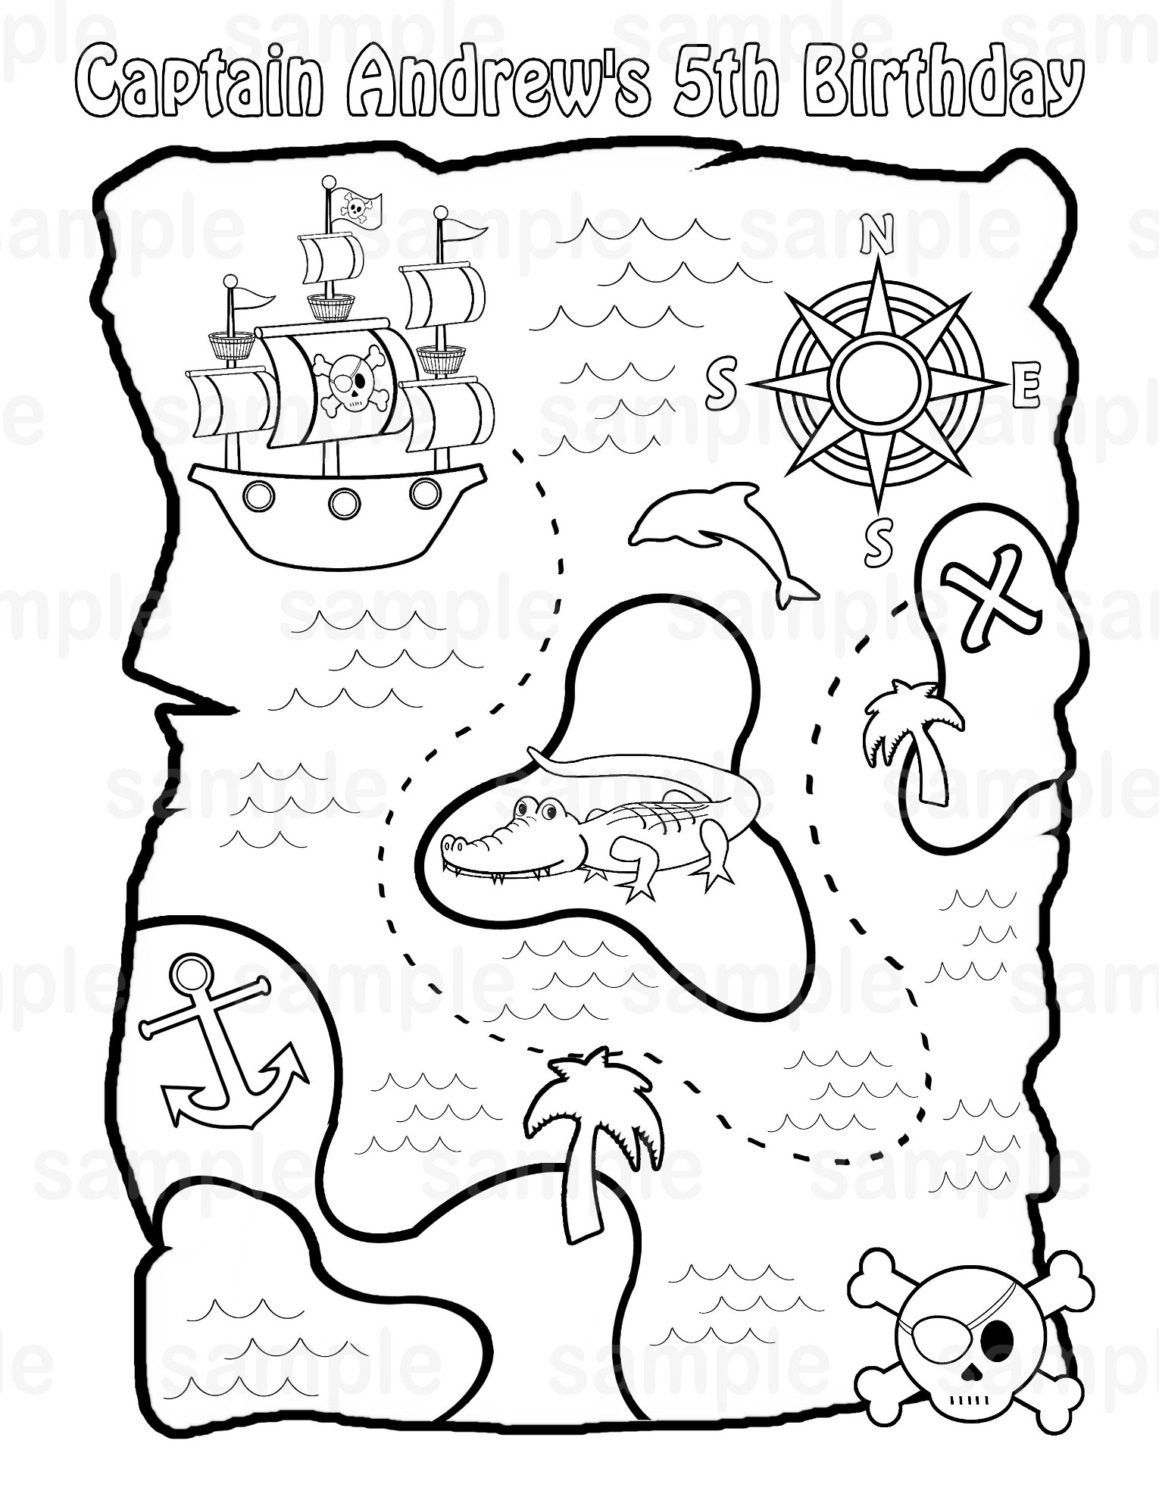 Printable Pirate Treasure Map For KidsAdult Coloring Pages